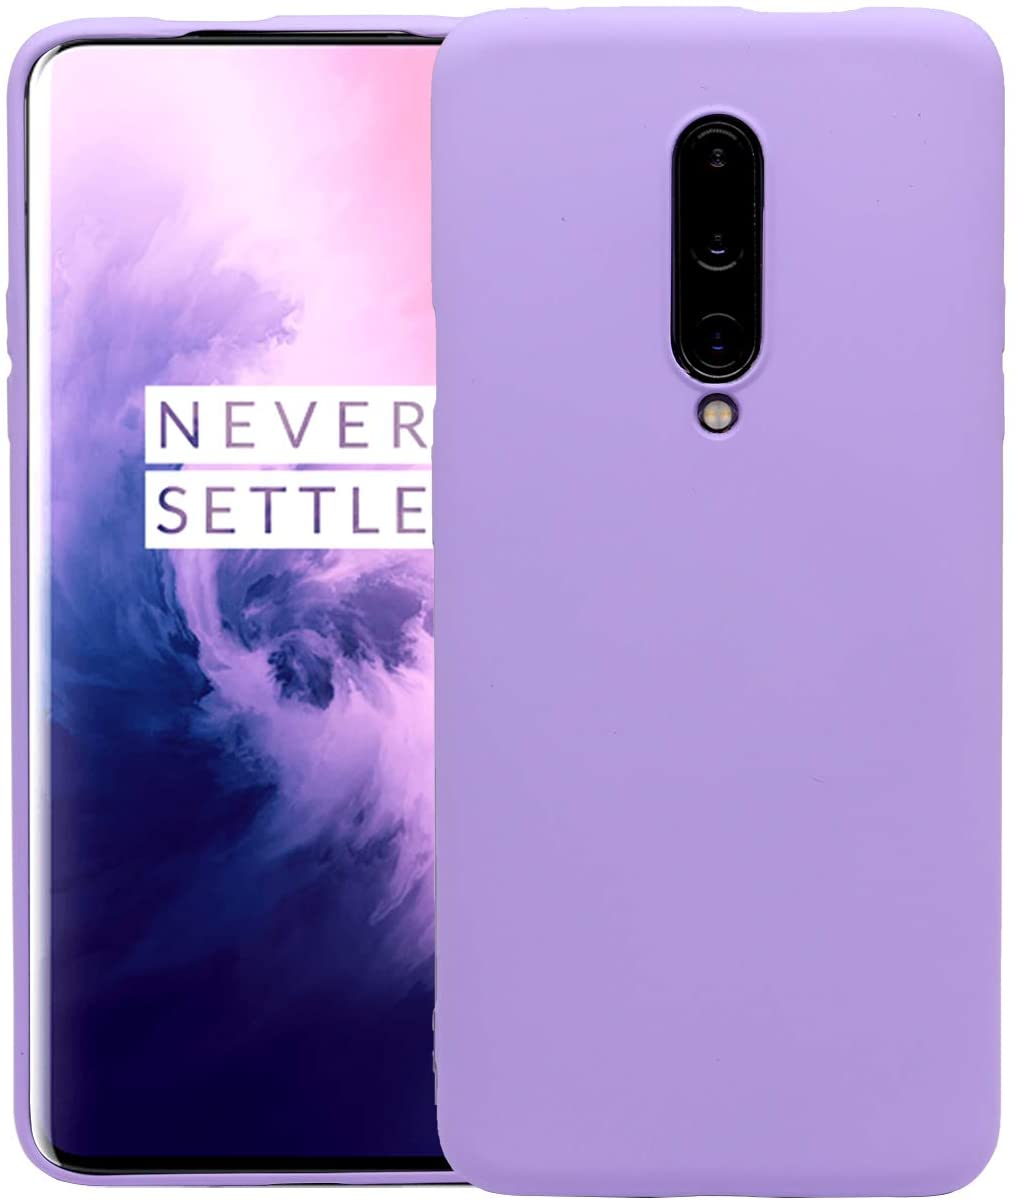 OnePlus 7 Pro Case, Flexible Soft Ultra-Thin TPU Rubber Protecting Case for OnePlus 7 Pro Phone, Shock Absorption & Scratch Resistant Grippy Stylish Case [Purple]